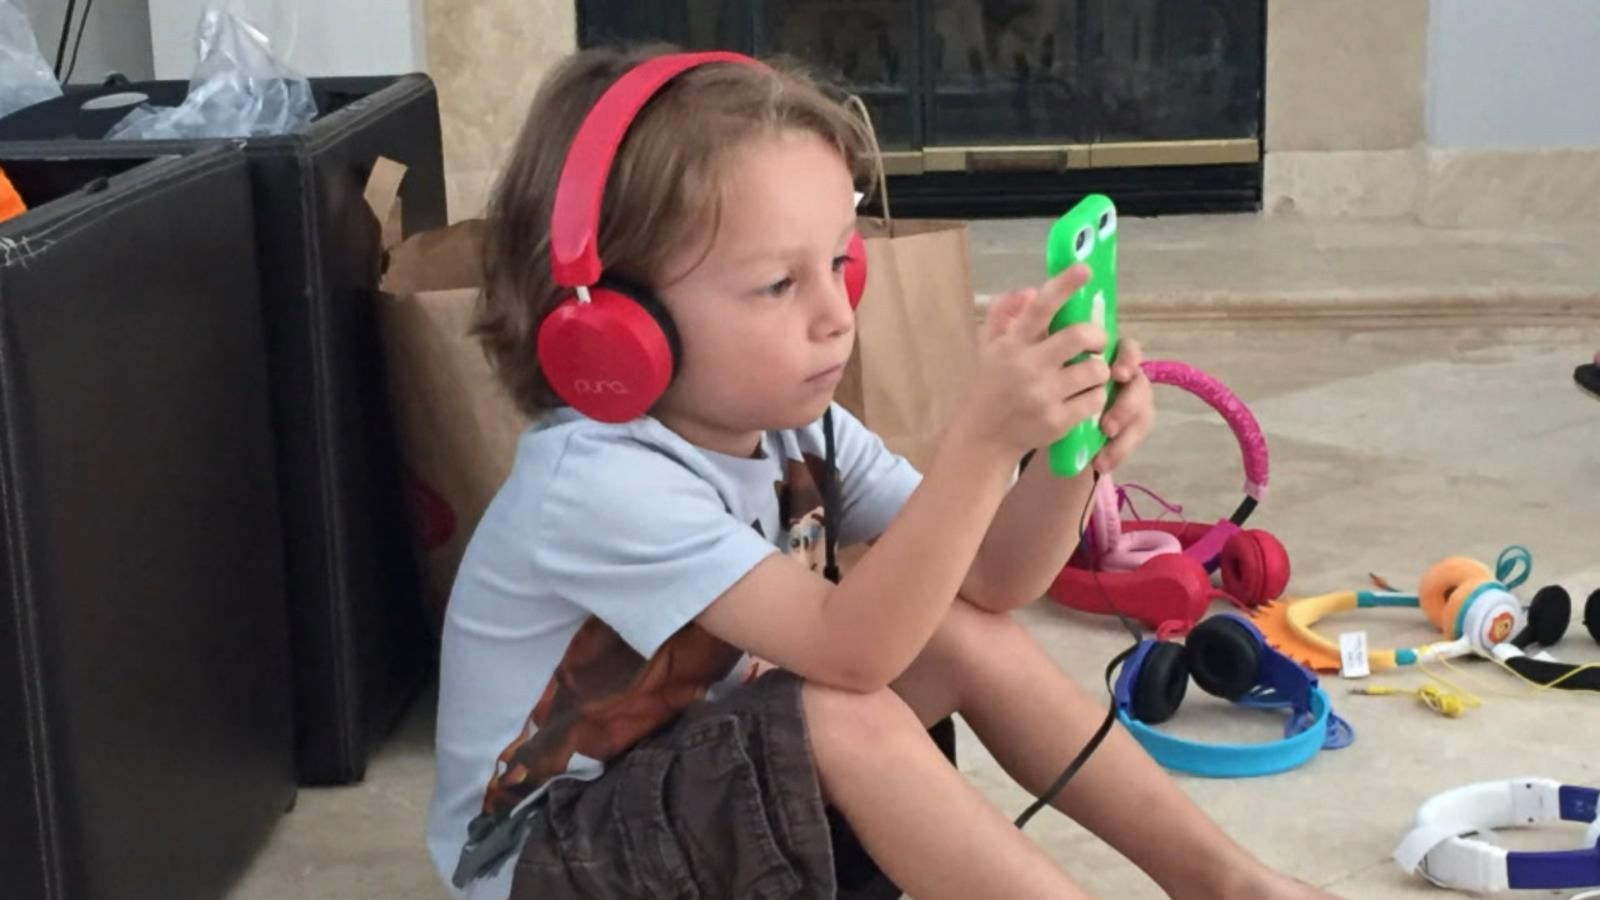 VIDEO: Report Reveals Kids' Headphones May Cause Hearing Problems